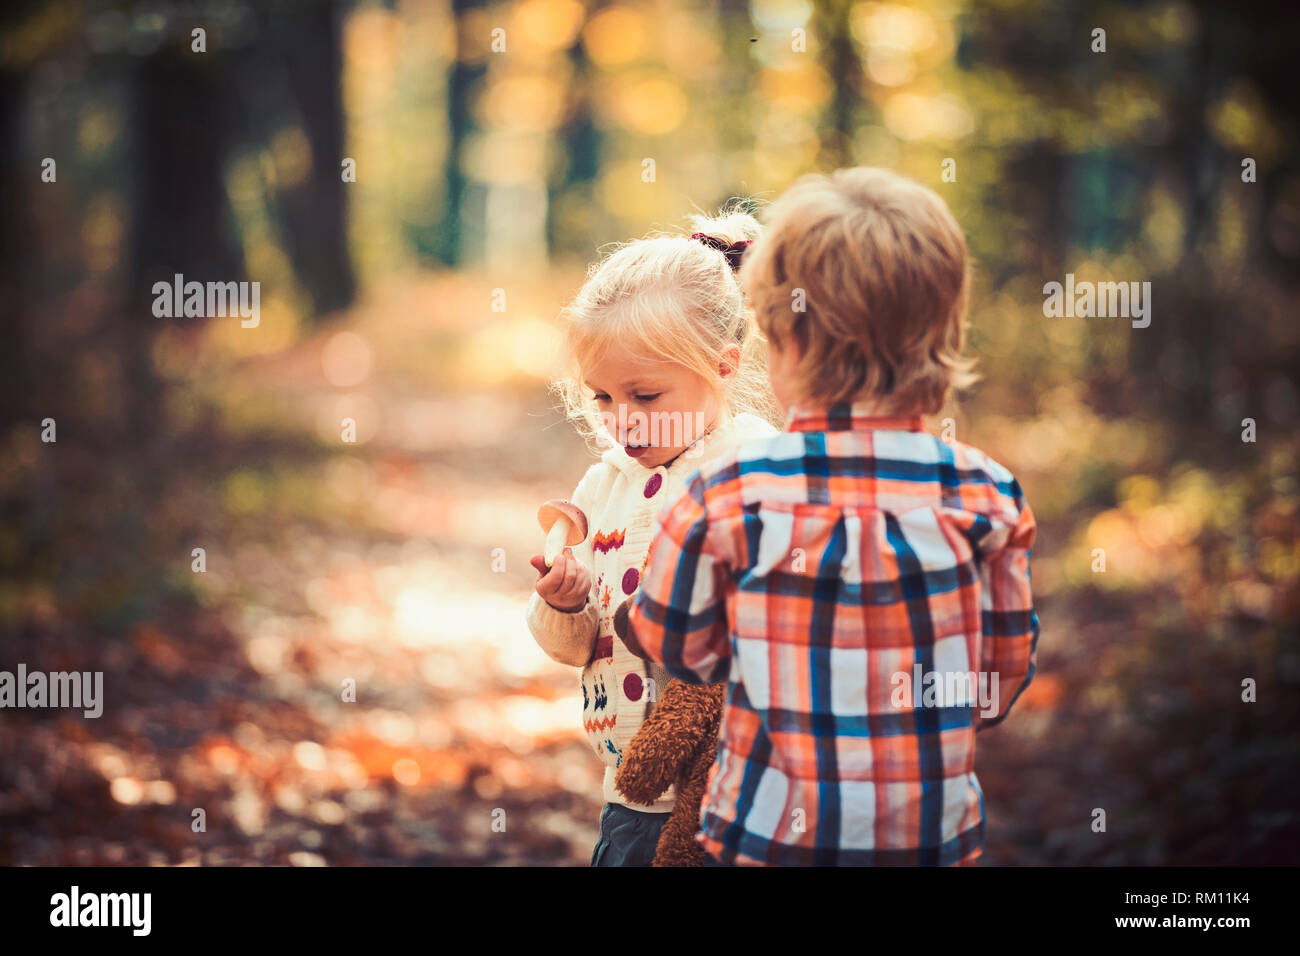 Upbringing and early development. Children harvest mushrooms in autumn forest. Little boy and girl friends camping in woods. Organic and healthy food Stock Photo